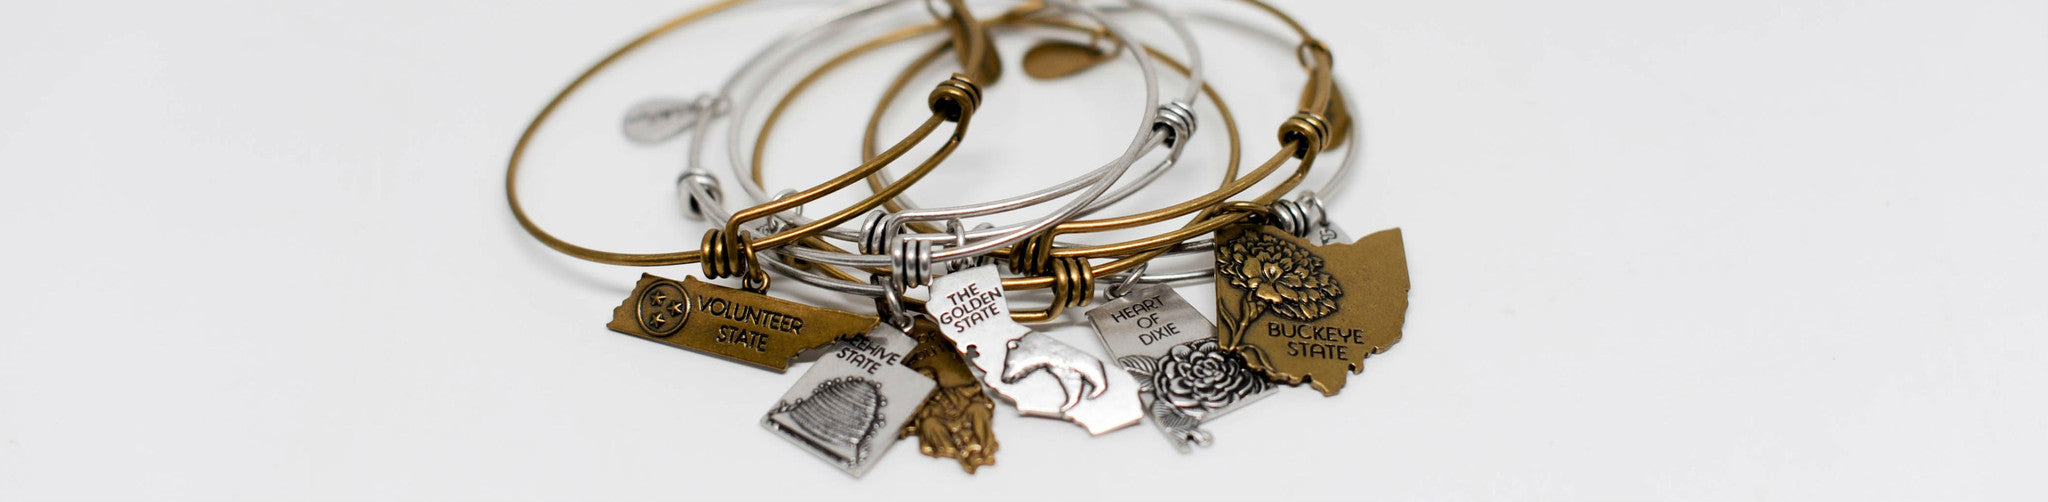 State Expandable Bangle Charm Bracelets